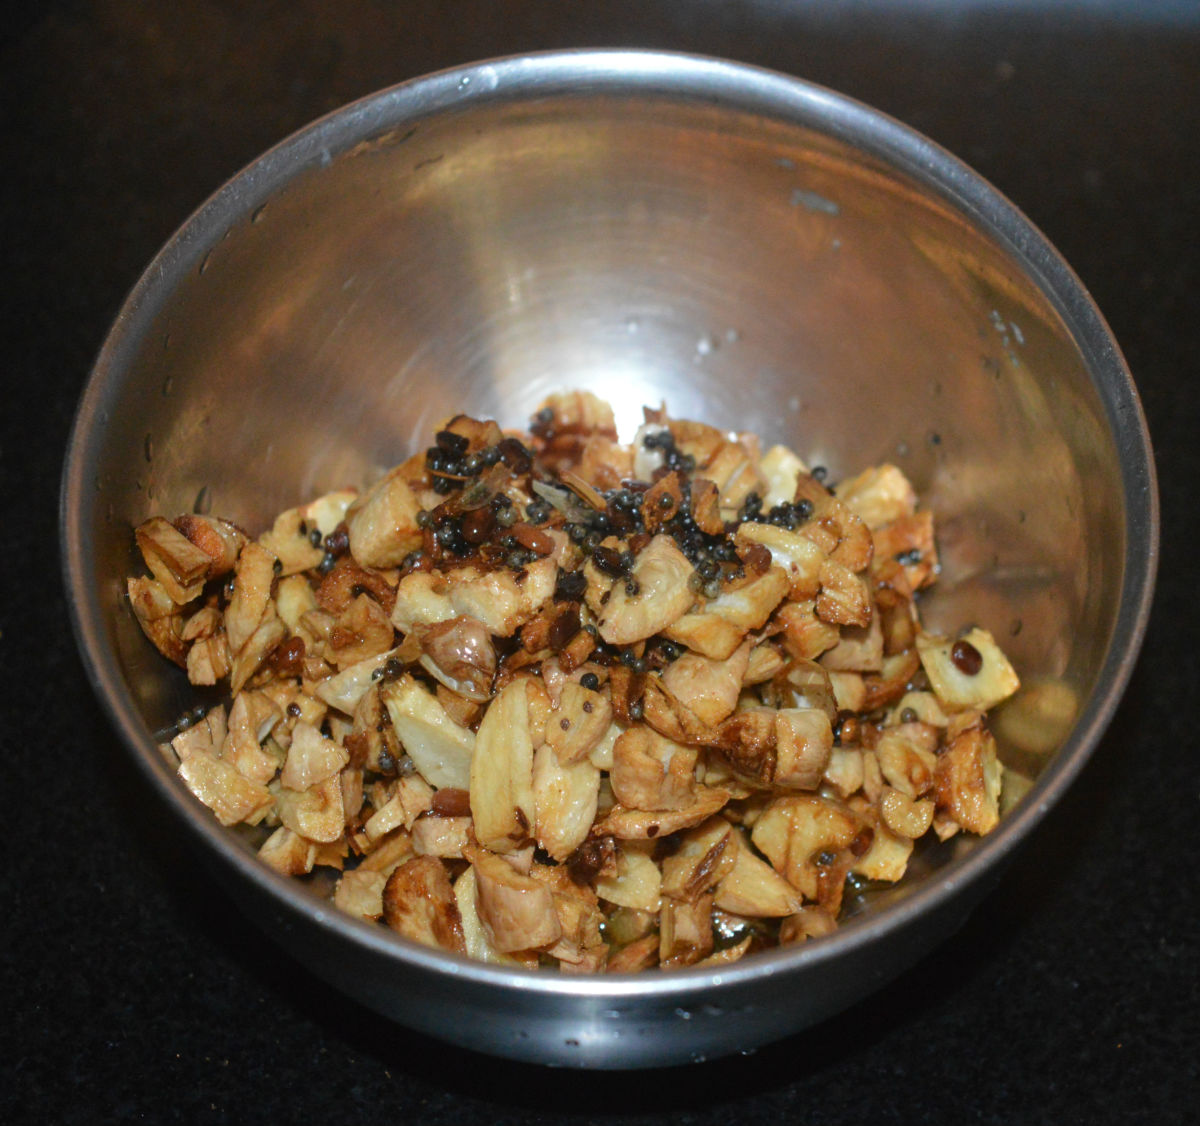 Collect the mixture in a bowl.